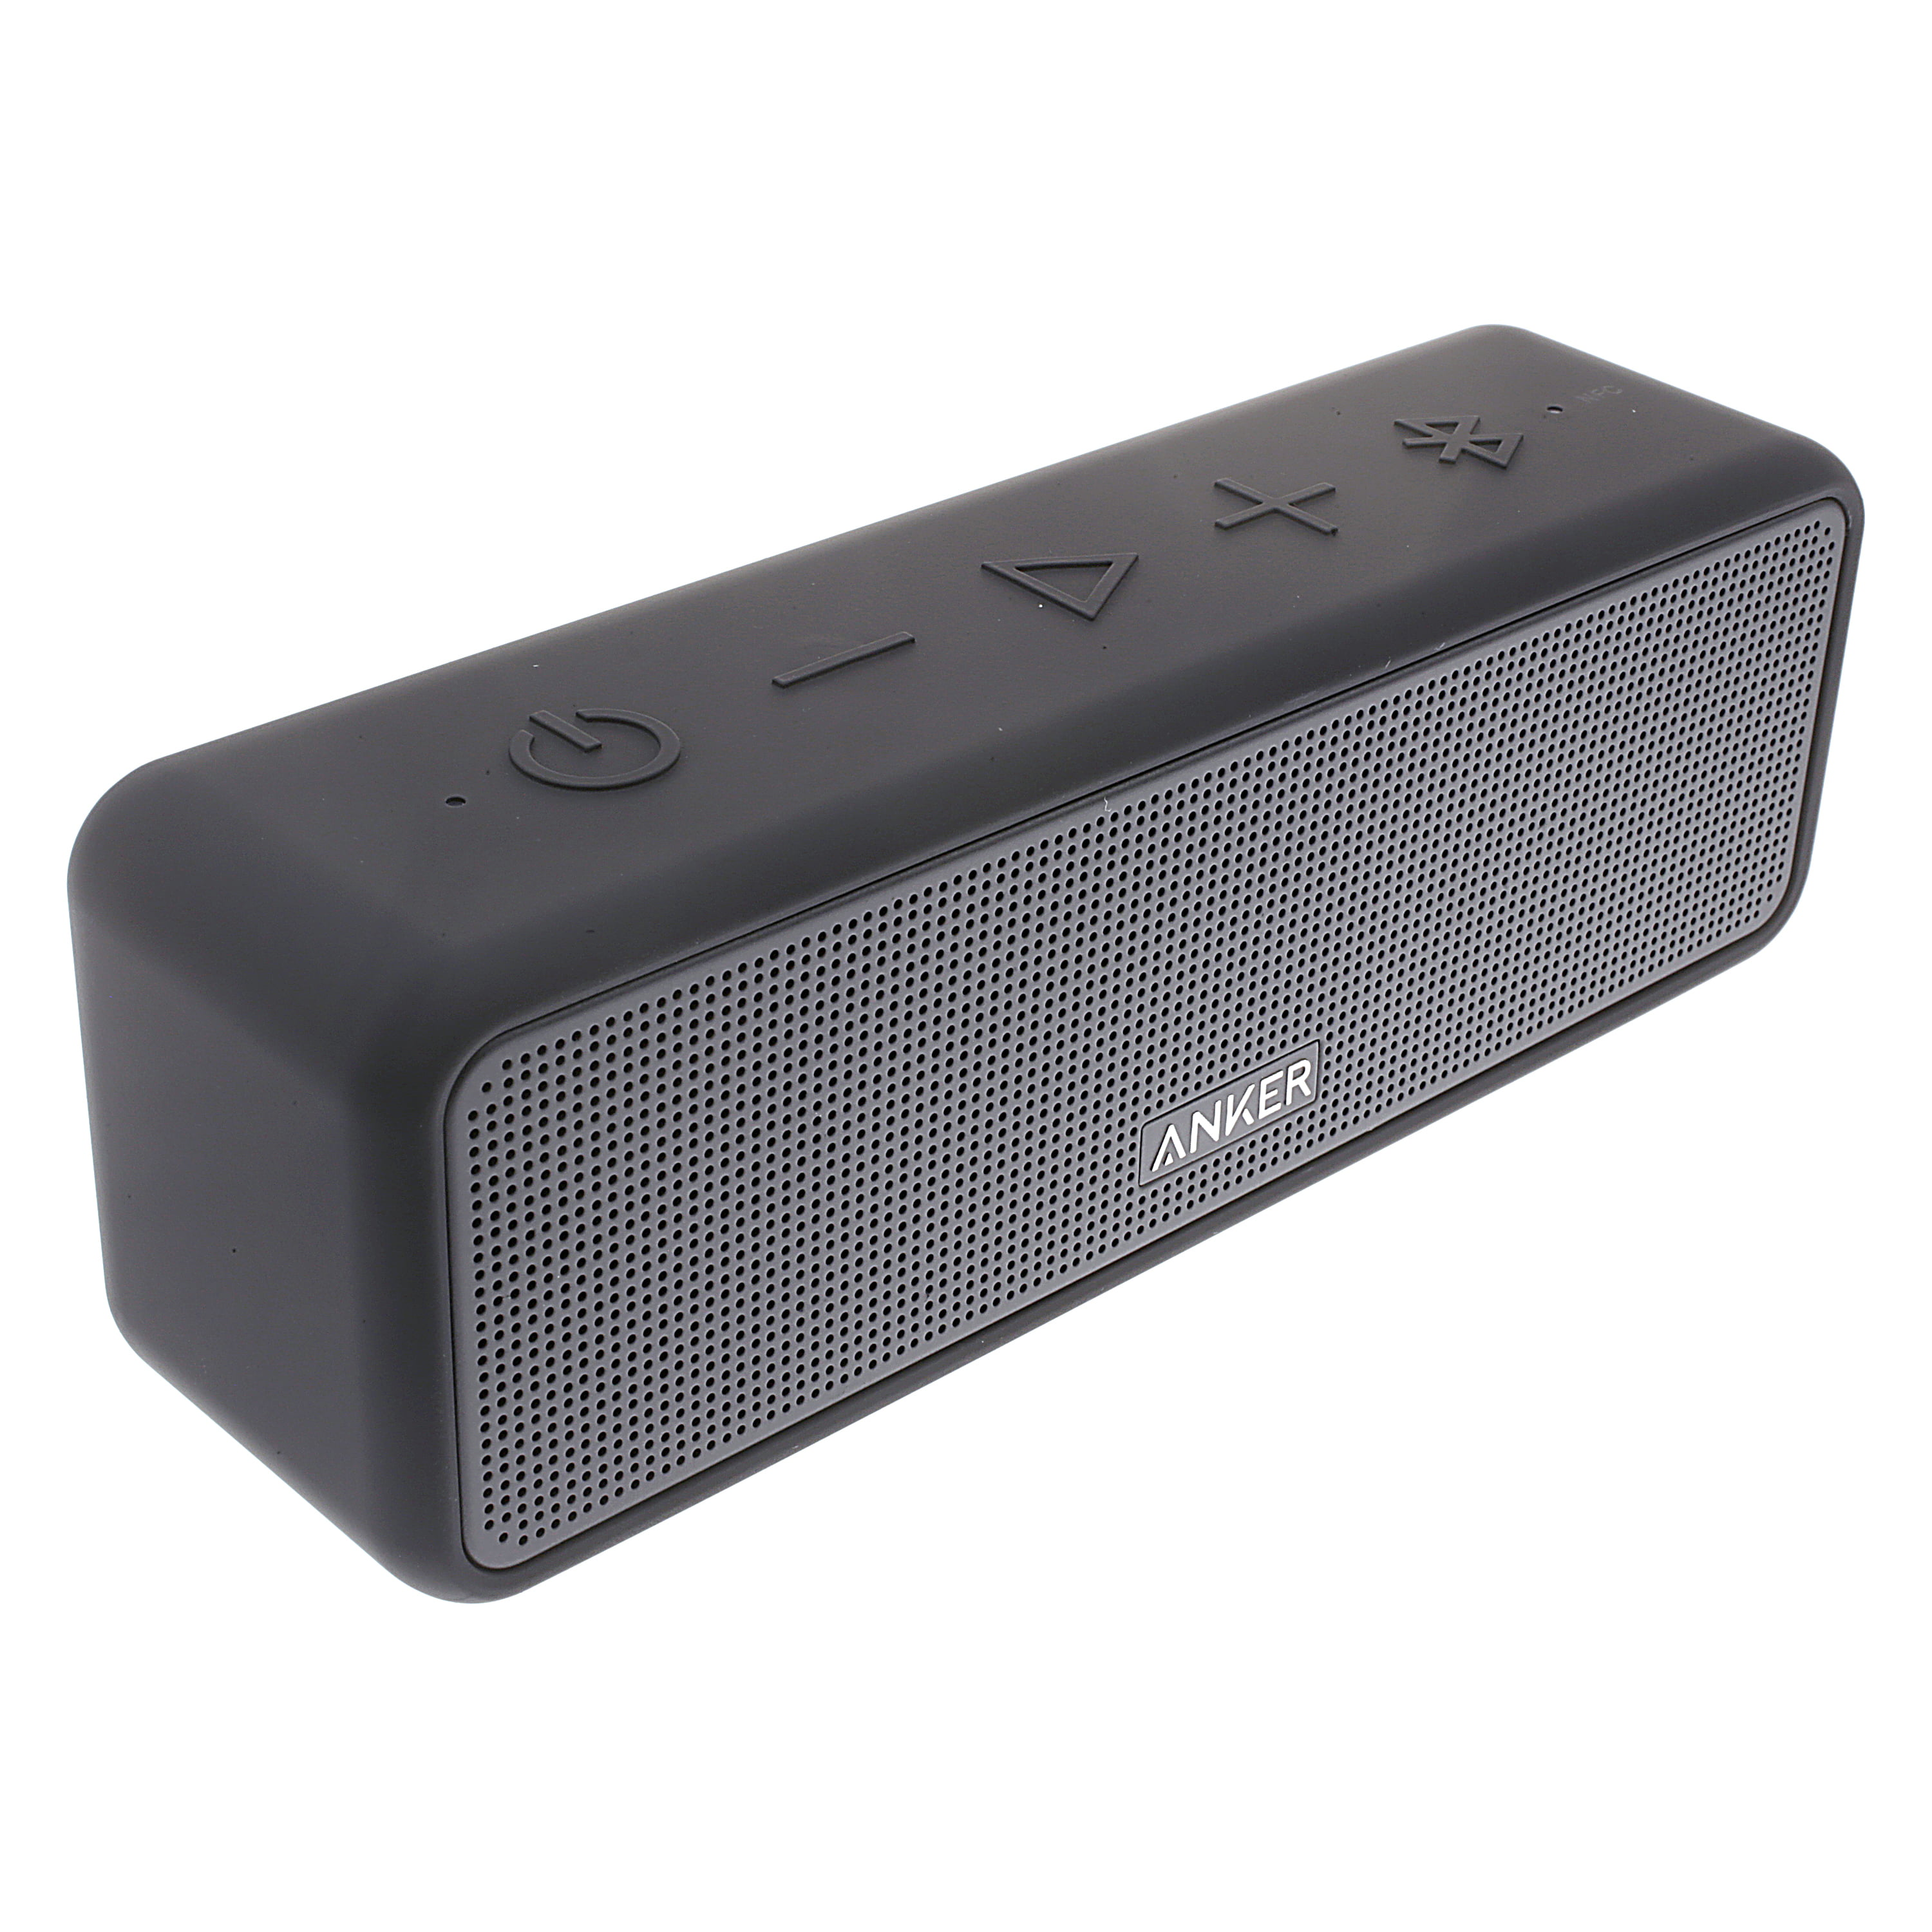 Anker Soundcore Select Portable Bluetooth Speaker Black With Loud Stereo Sound Rich Bass 24 Hour Playtime 66 Ft Bluetooth Range Built In Mic Perfect Wireless Speaker For Iphone Samsung And More Walmart Com